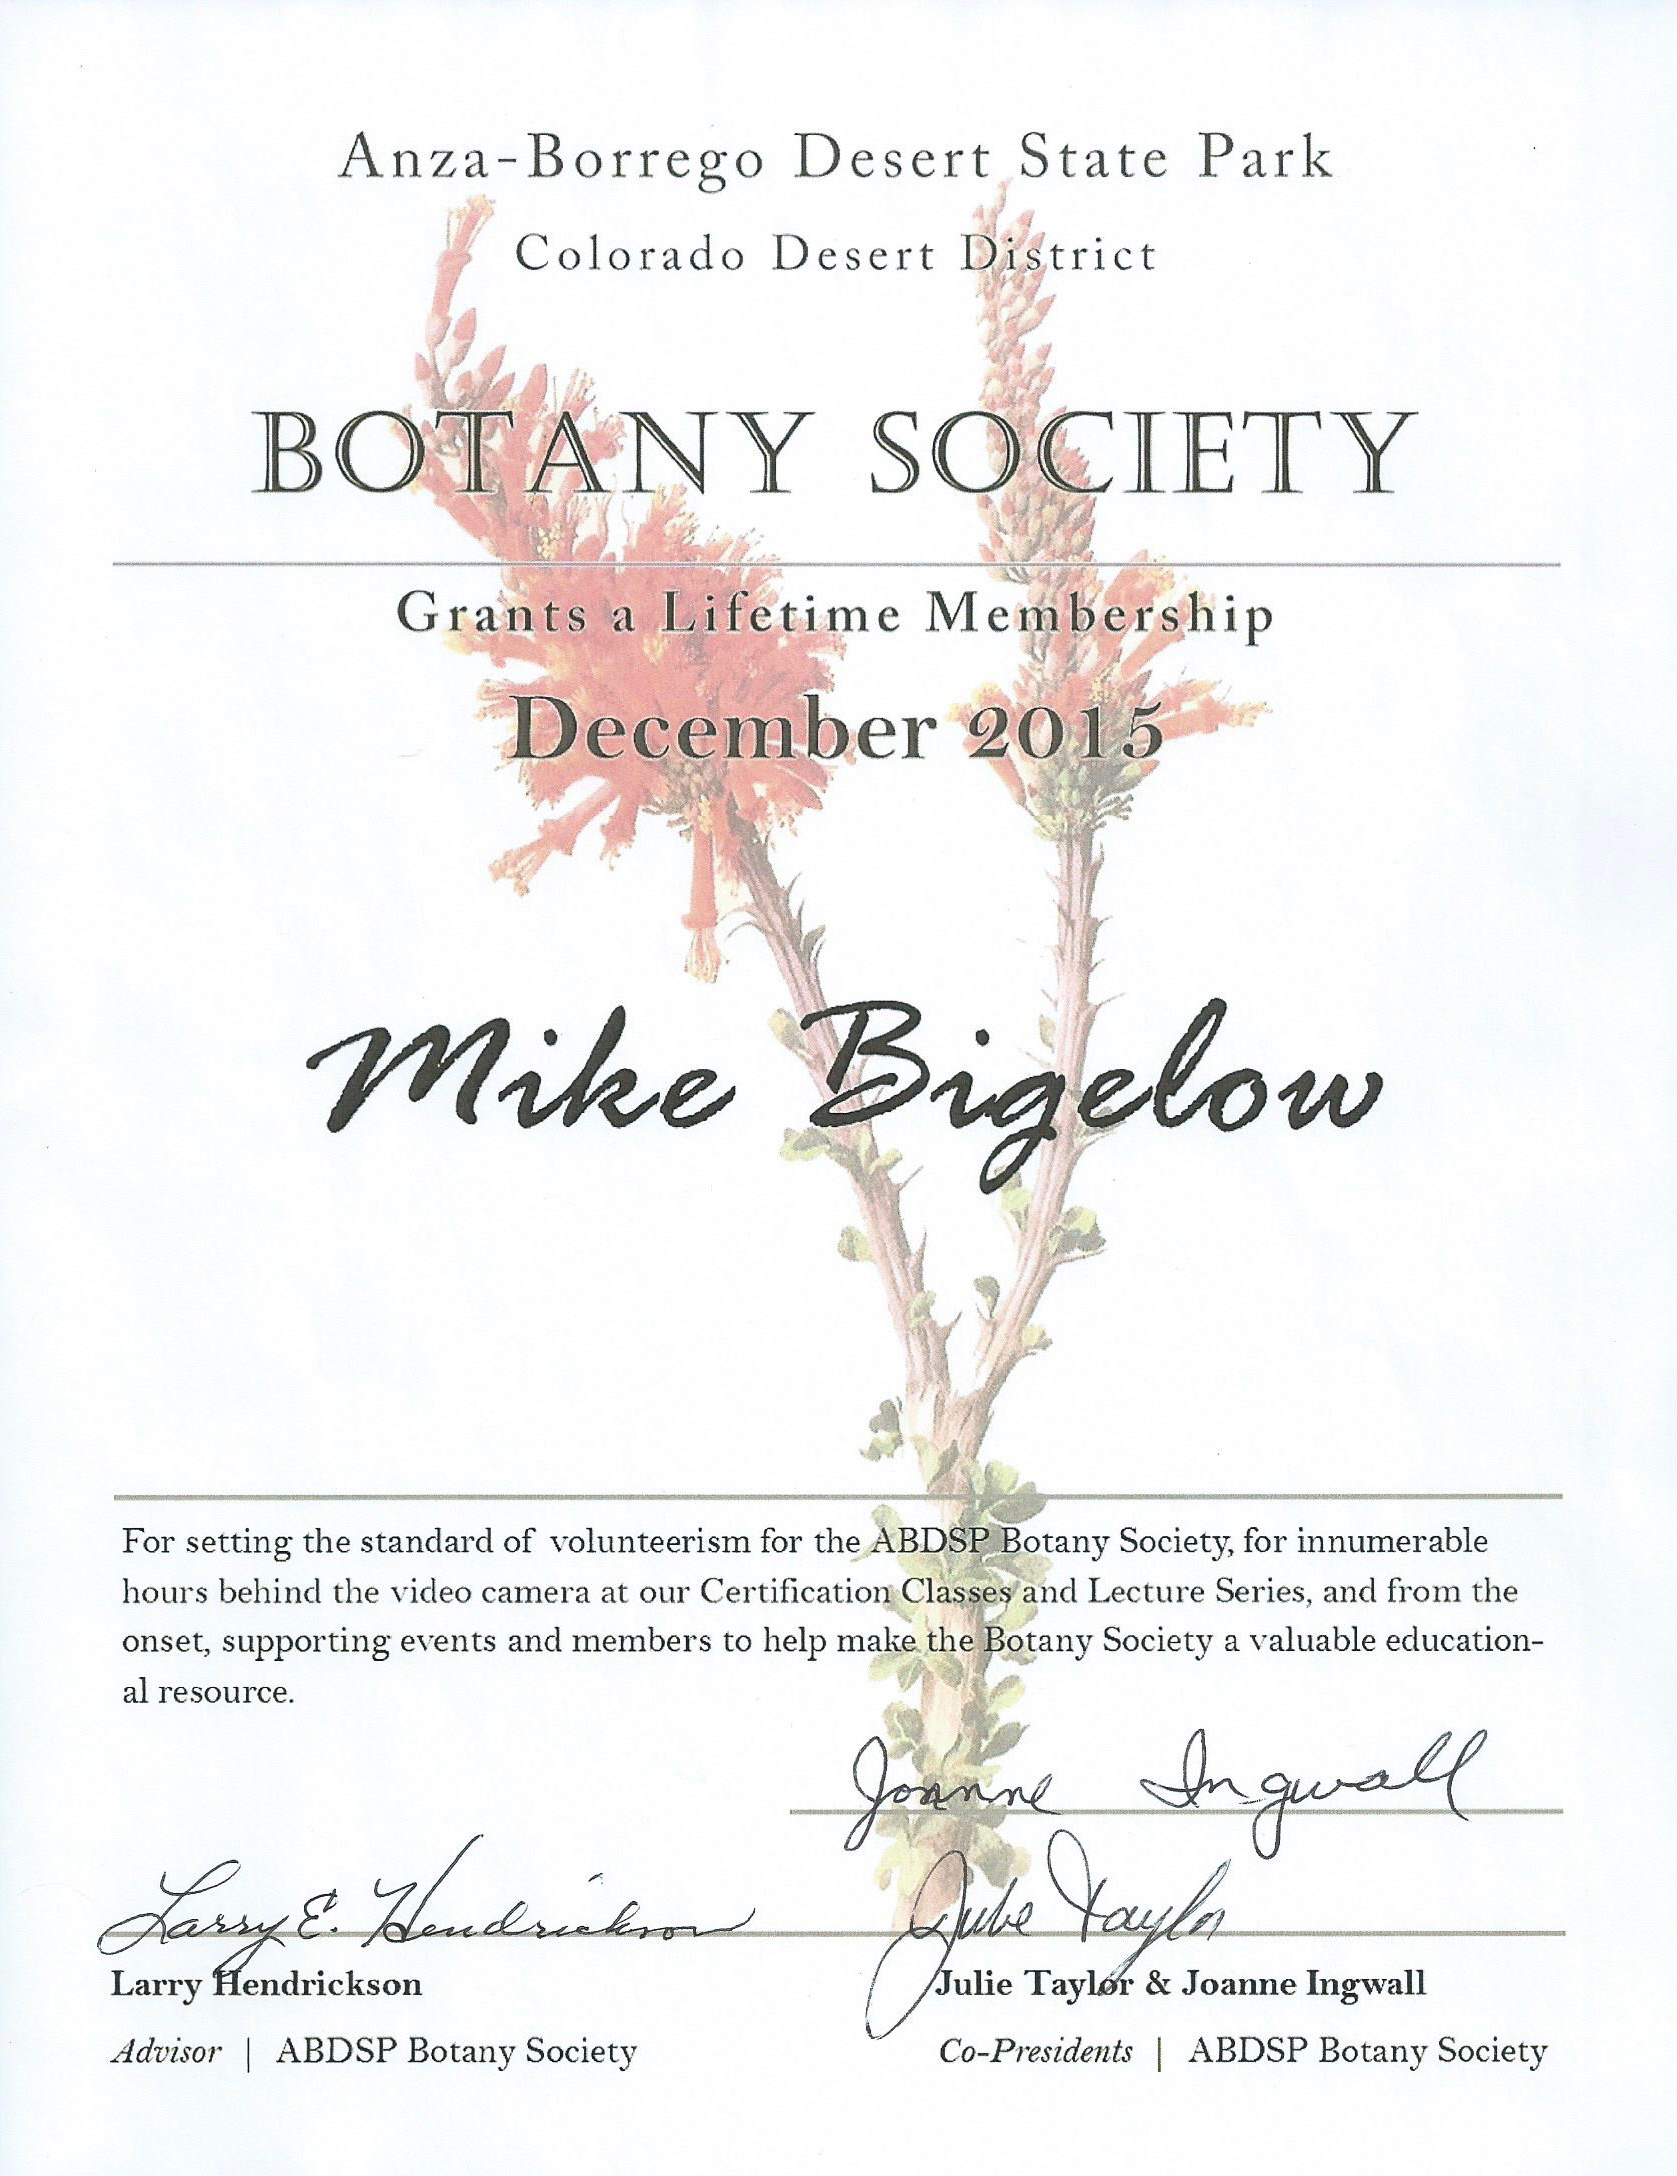 Click on the certificate to see a larger image.